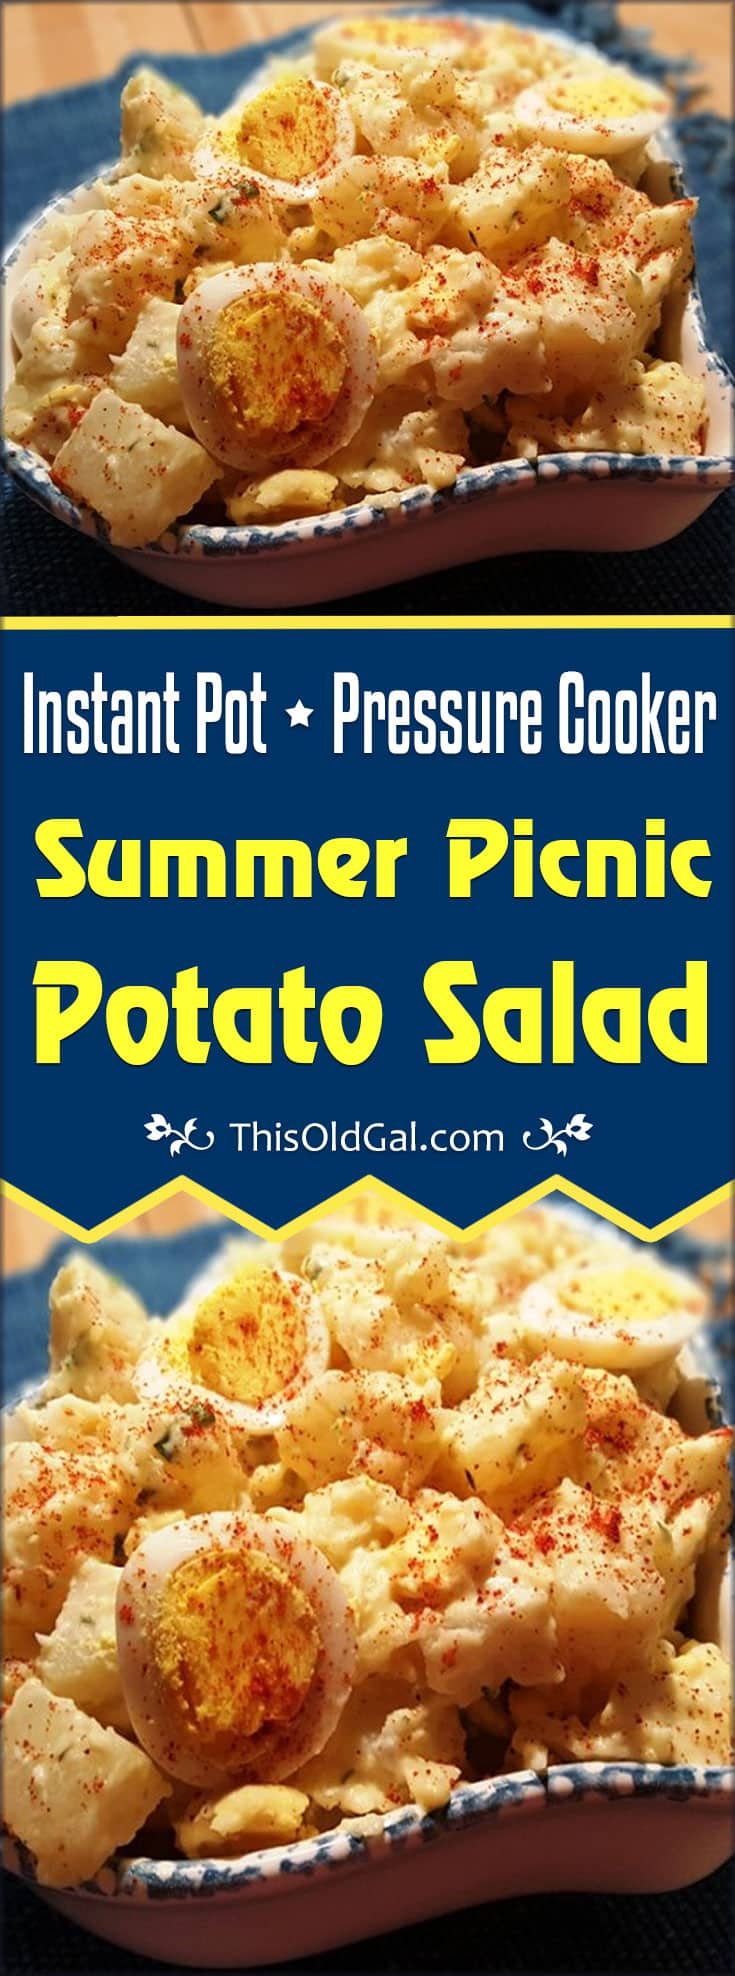 Pressure Cooker Summer Picnic Potato Salad